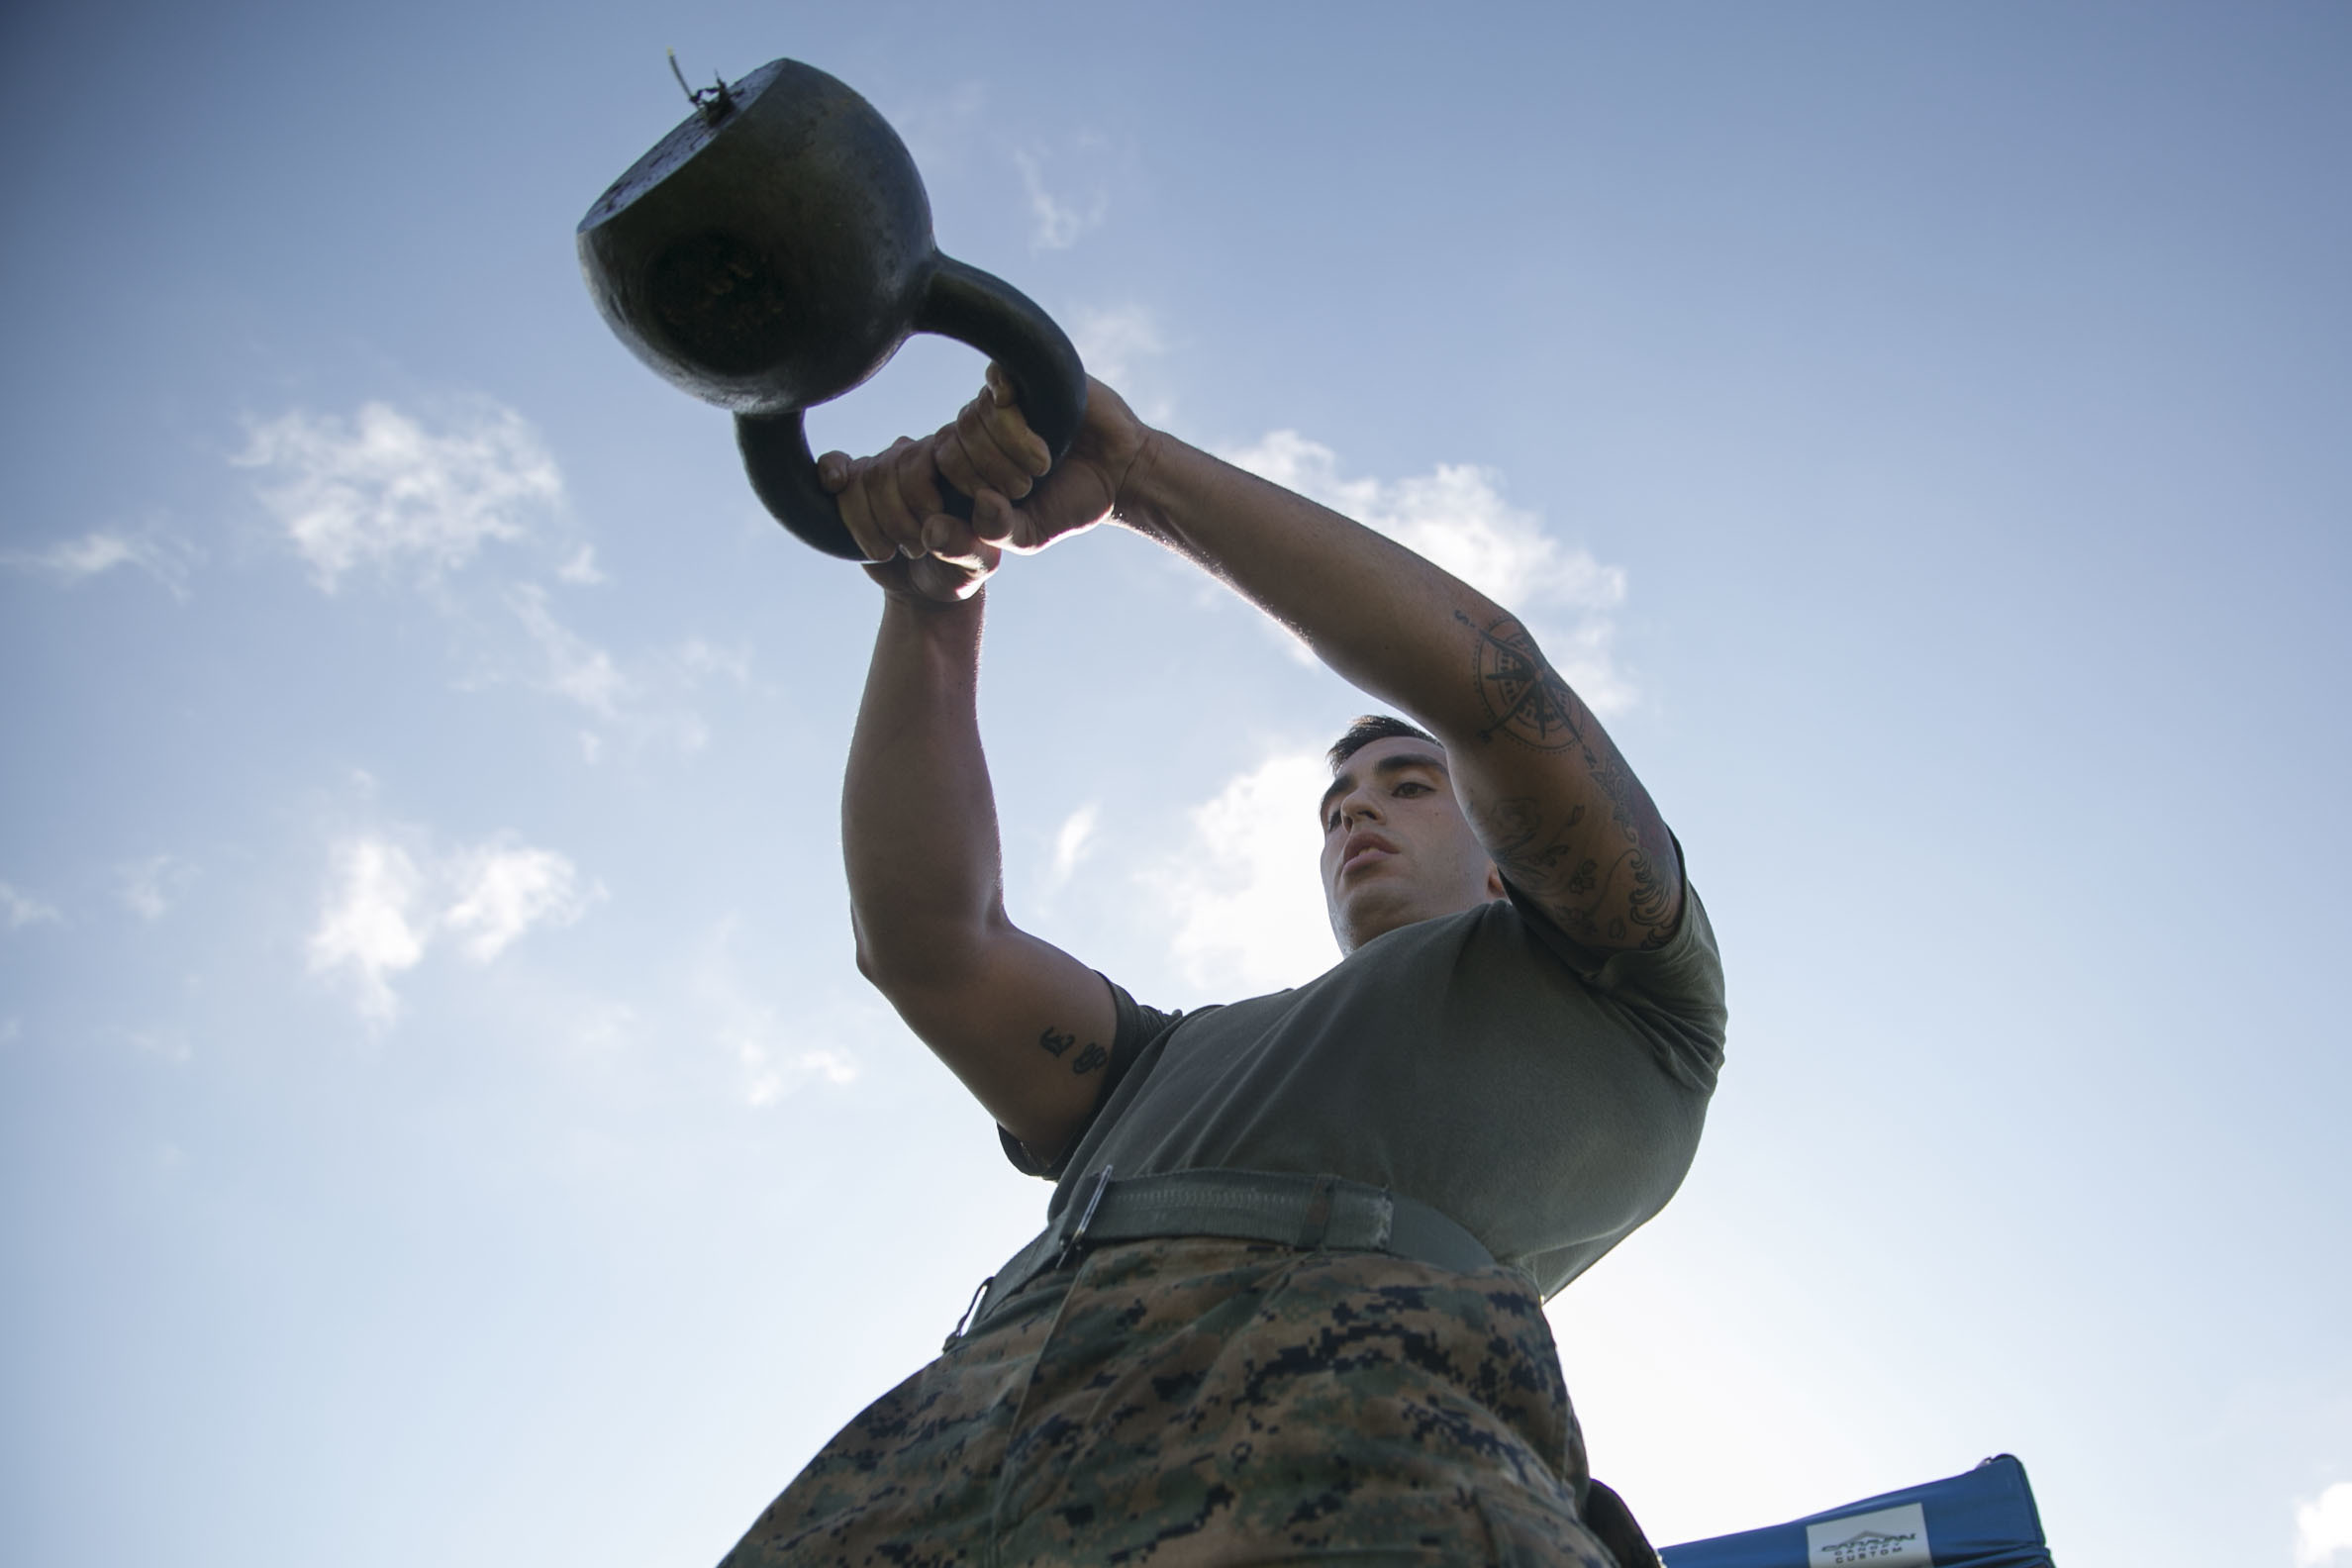 "Sgt. Harold S. Johnson performs a kettlebell swing while competing in a High Intensity Tactical Training competition June 17 aboard Camp Foster, Okinawa, Japan. Marines battled to see who could get the best time on three challenging events, which consisted of exercises such as kneeling power ball throws, kettlebell carries and burpees. The top male and female participants from the competition will travel to Marine Corps Air Station Miramar, California to compete in the HITT Championship to claim the title ""Ultimate Tactical Athlete."" Johnson is a combat videographer with Headquarters and Service Battalion, Marine Corps Installations Pacific-Marine Corps Base Camp Butler, Japan. (U.S. Marine Corps Photo by Cpl. Douglas Simons/Released)"